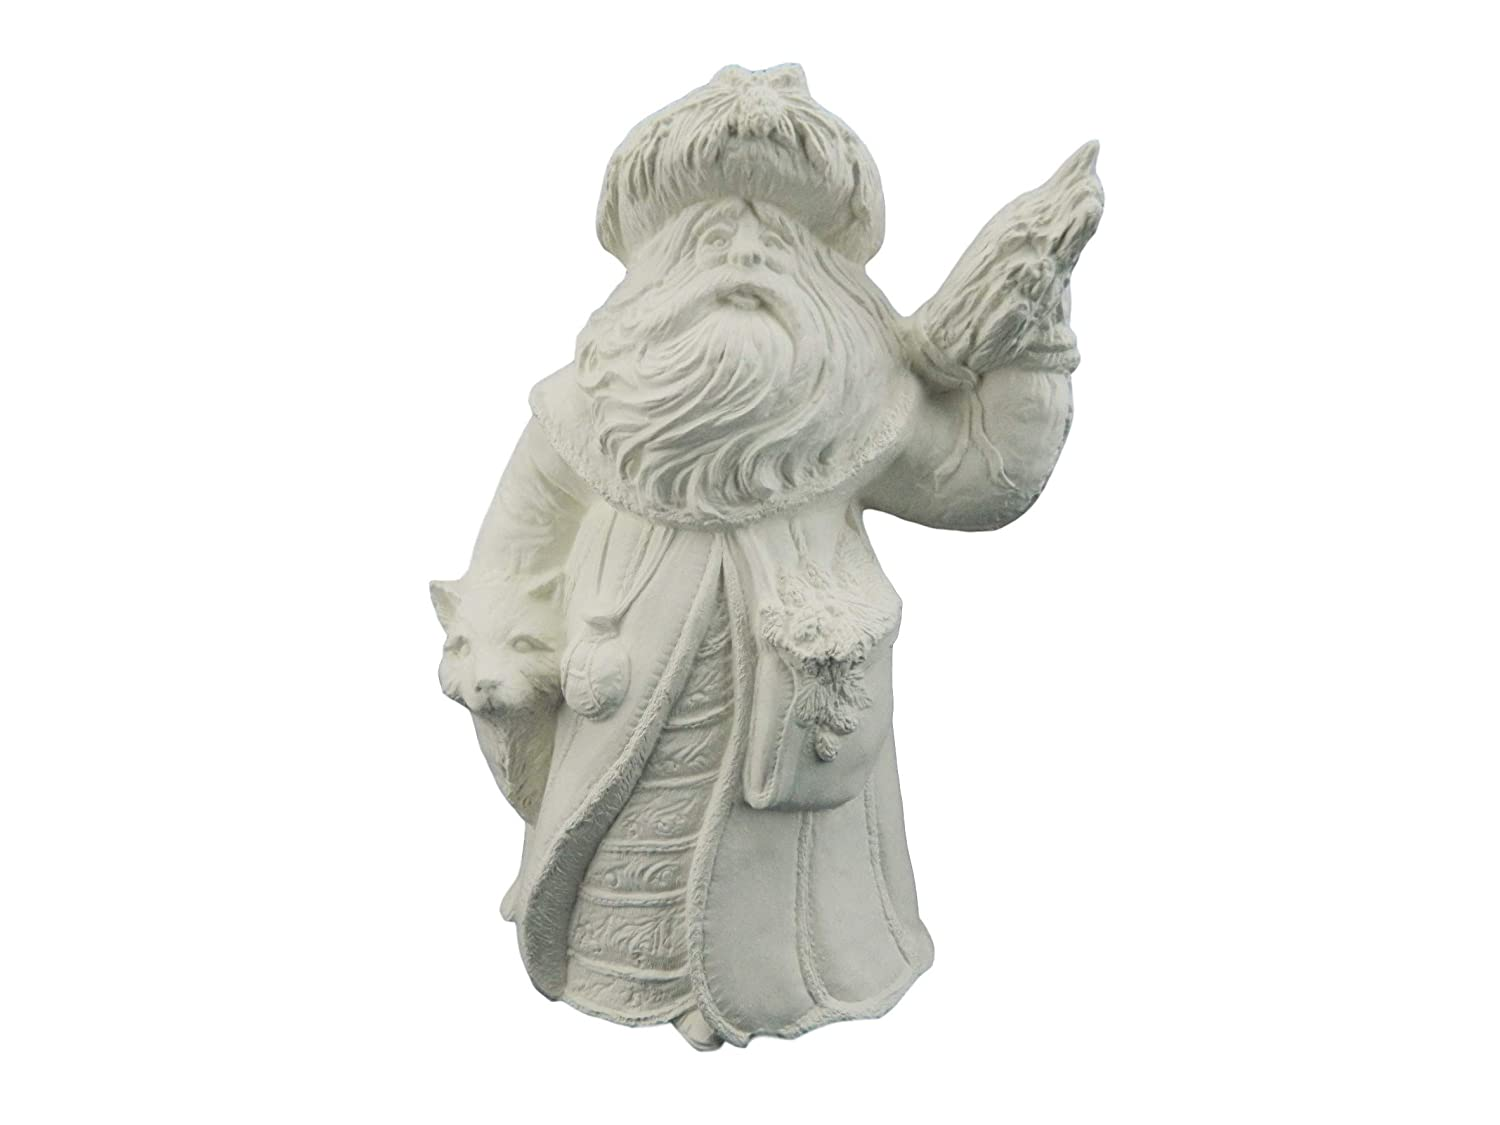 Ready to Paint Ceramic Bisque 10 Inches Mountain Old World Santa with Wolf